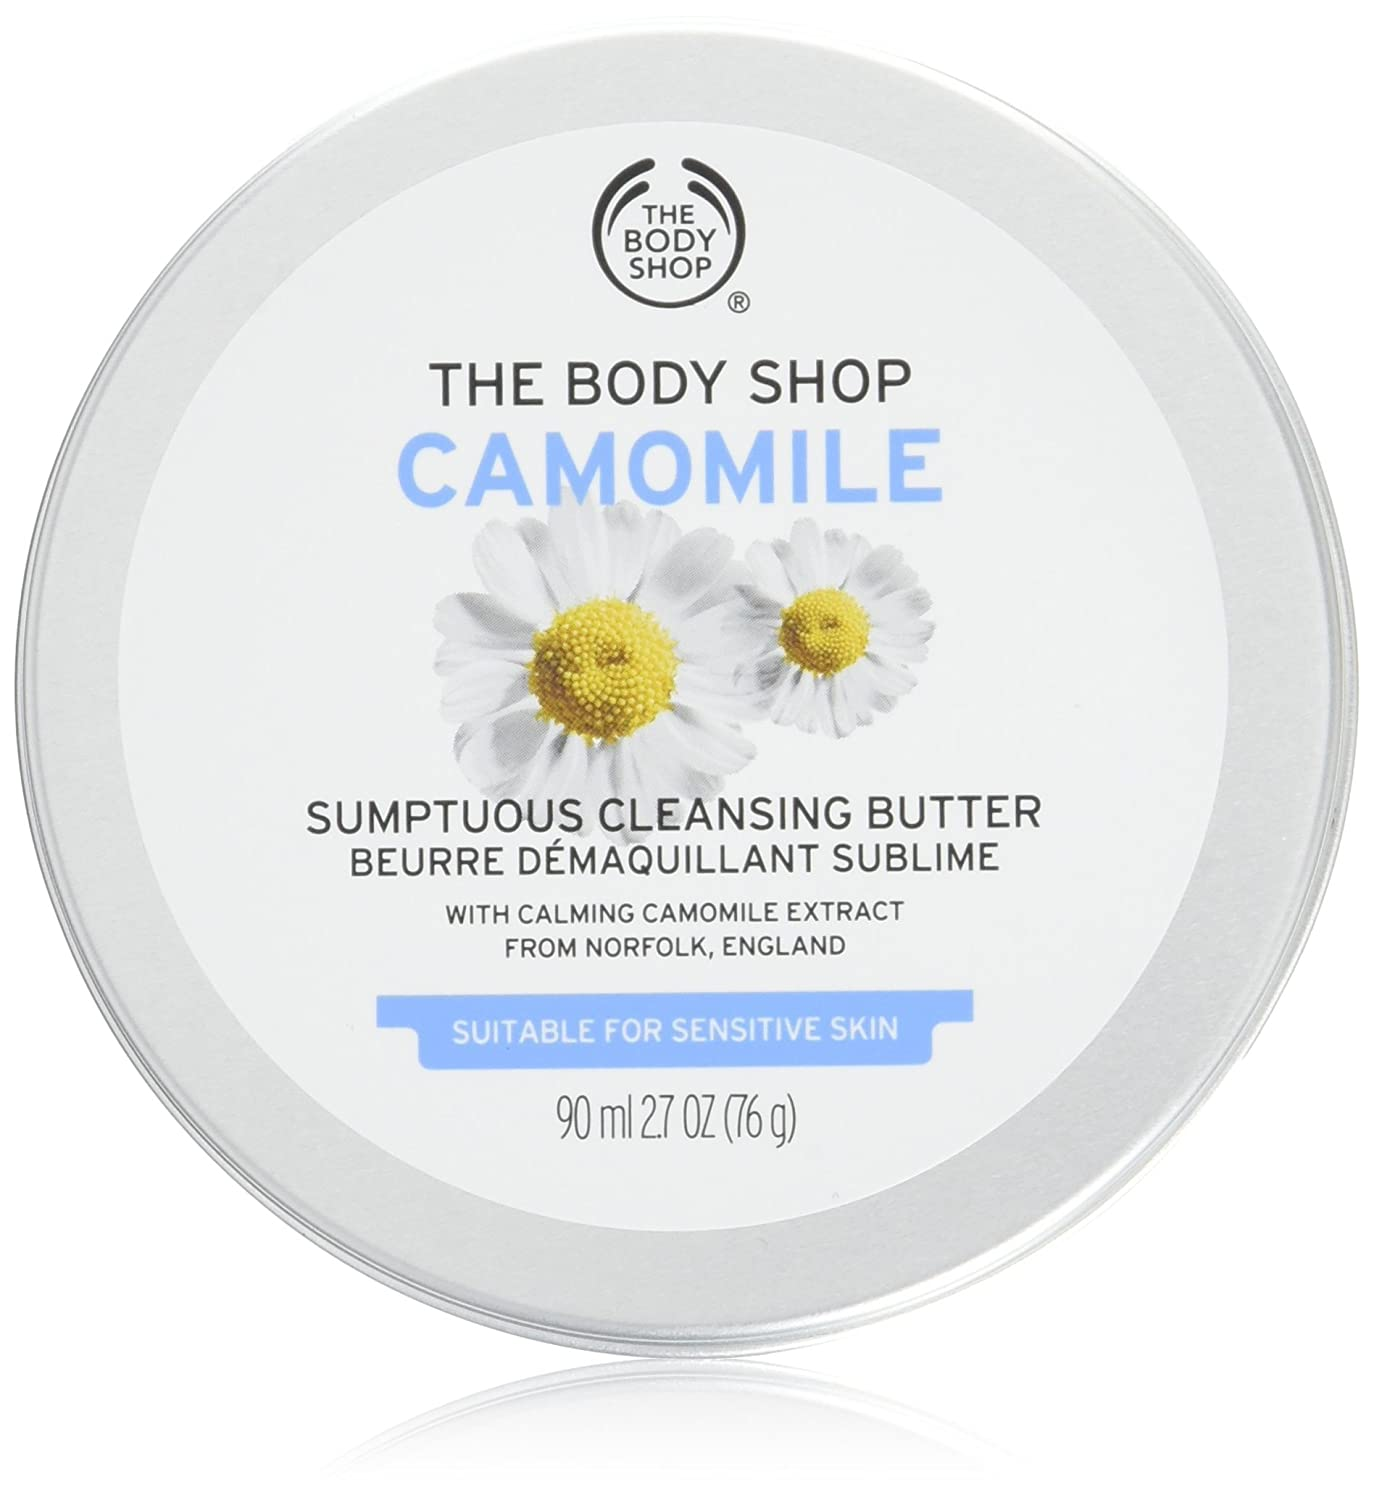 The Body Shop Camomile Sumptuous Cleansing Butter, 2.7 Oz Buth-na-Bodhaige Inc d/b/a The Body Shop 1096145